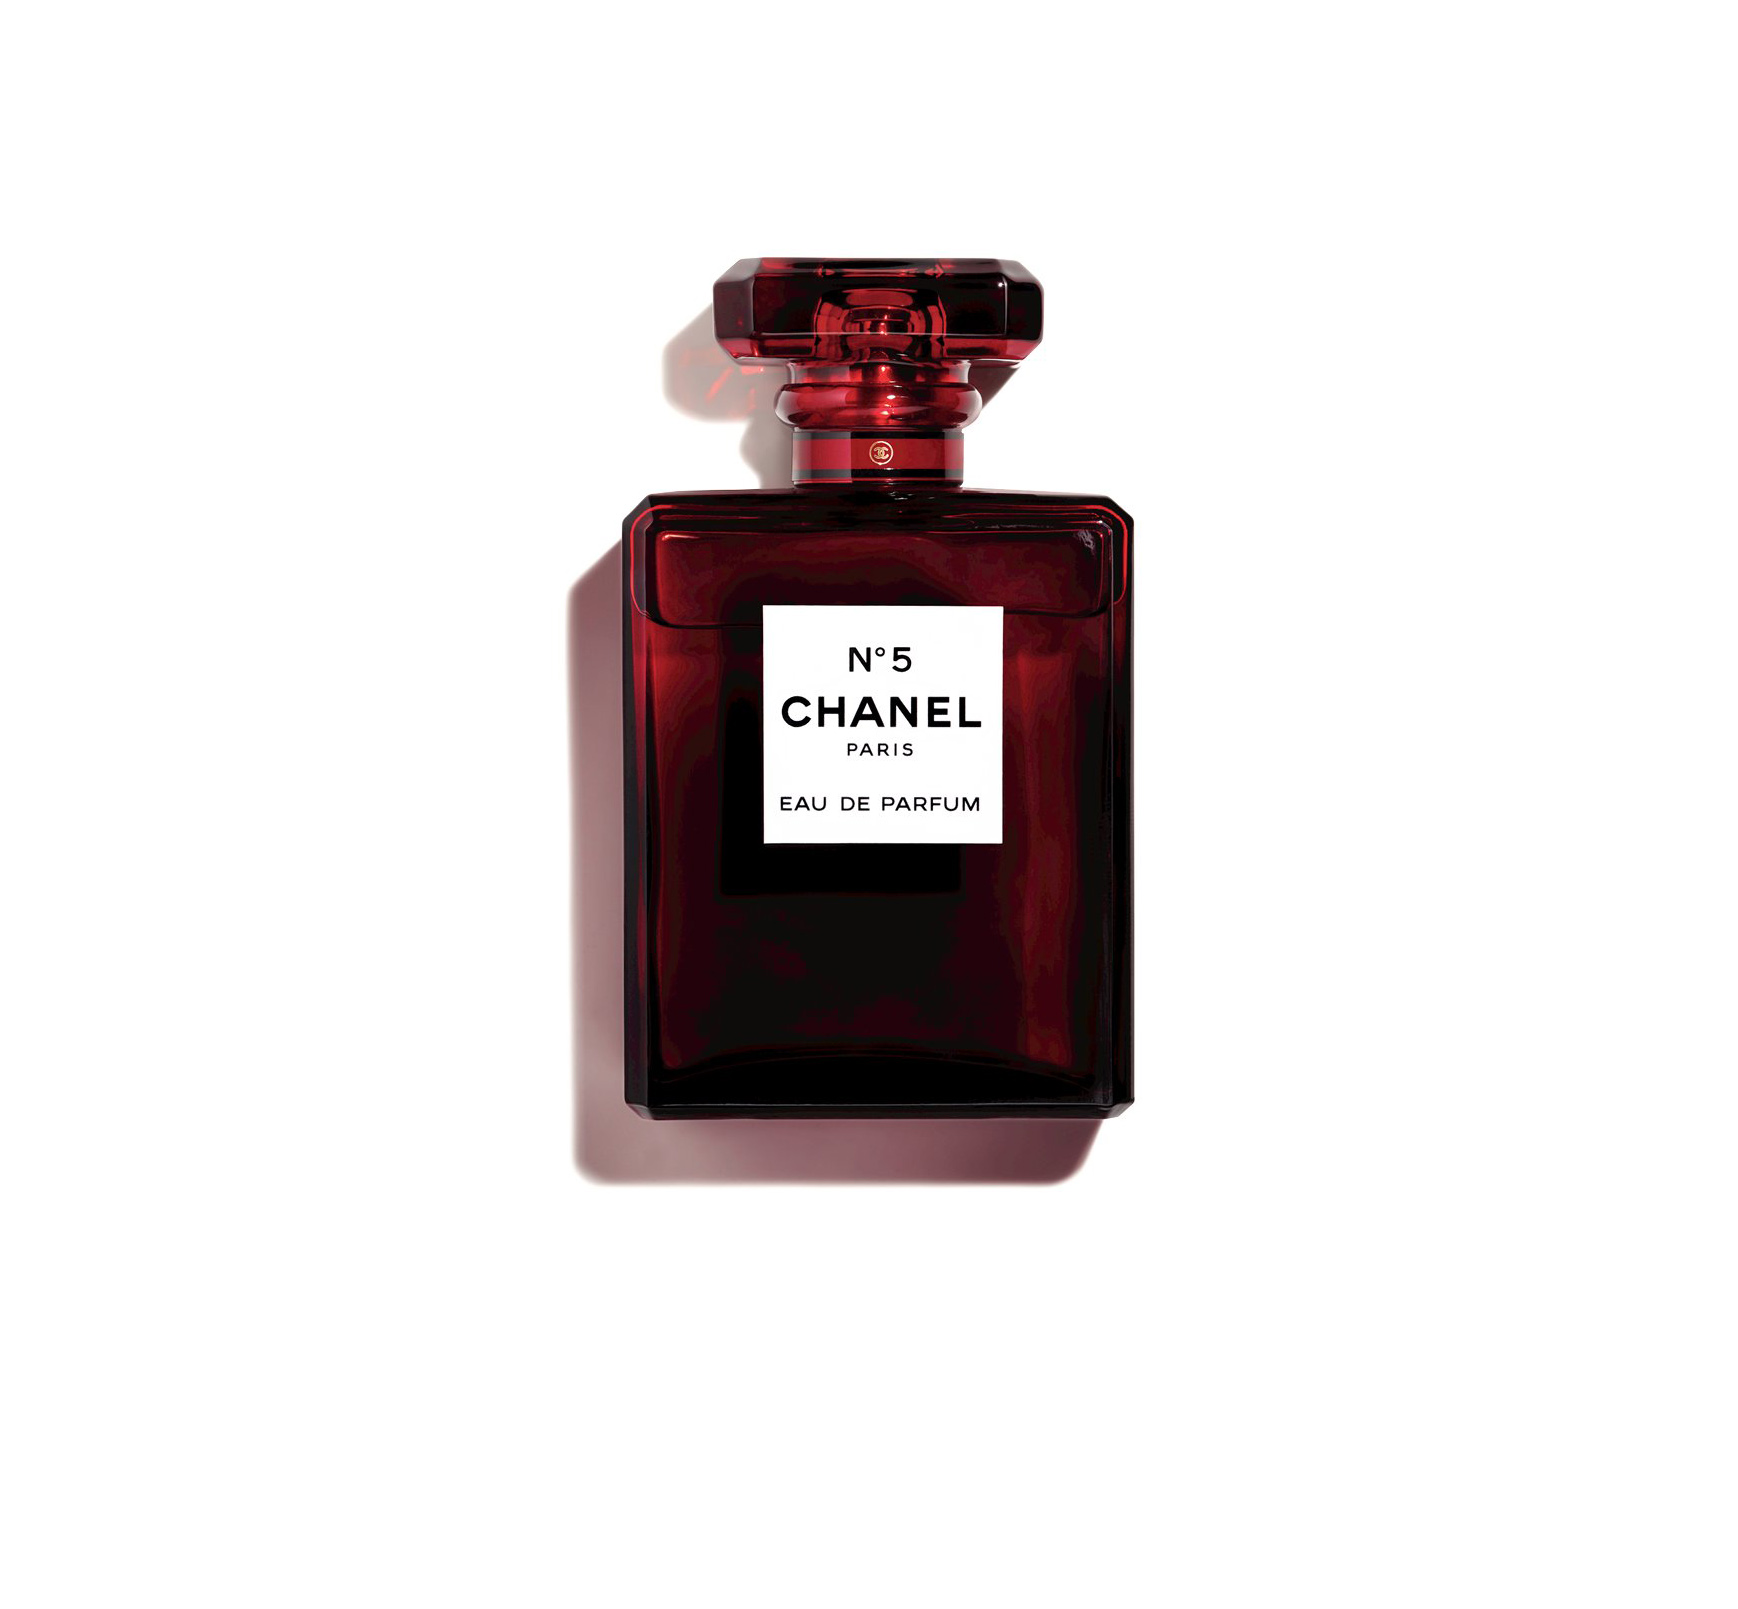 holiday gift guide fragrance- chanel - 'Tis the season to revisit the iconic warm floral mix of jasmine, citrus, aldehyde and bourbon vanilla that is now all dressed up in a limited-edition crimson flacon. $160 for 3.4 oz, chanel.com